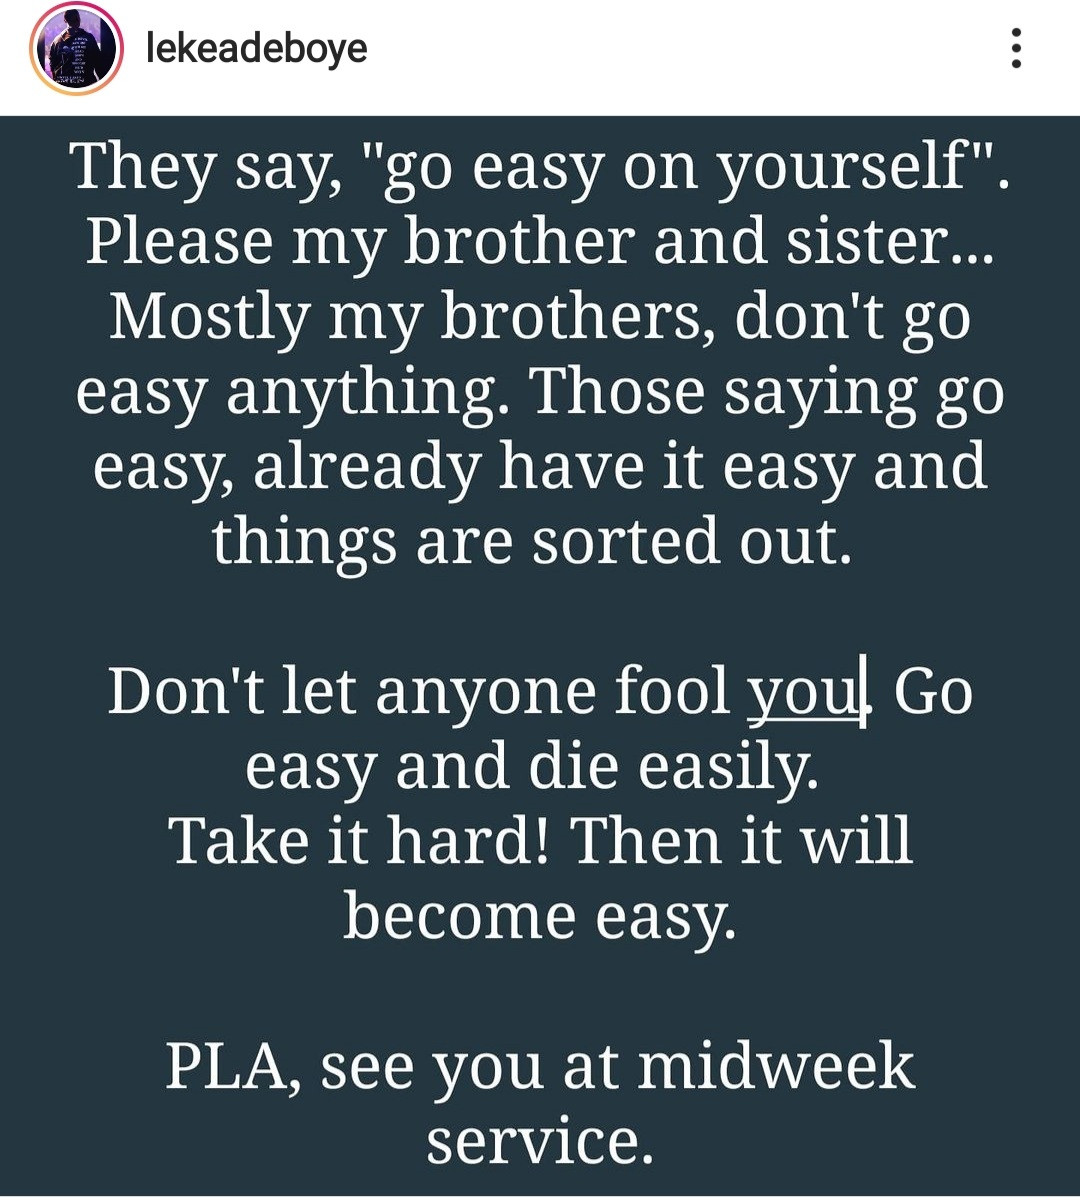 """6141d48f56ab4 - """"Take it hard then it will become easy"""" Leke Adeboye warns his followers against going easy on themselves"""